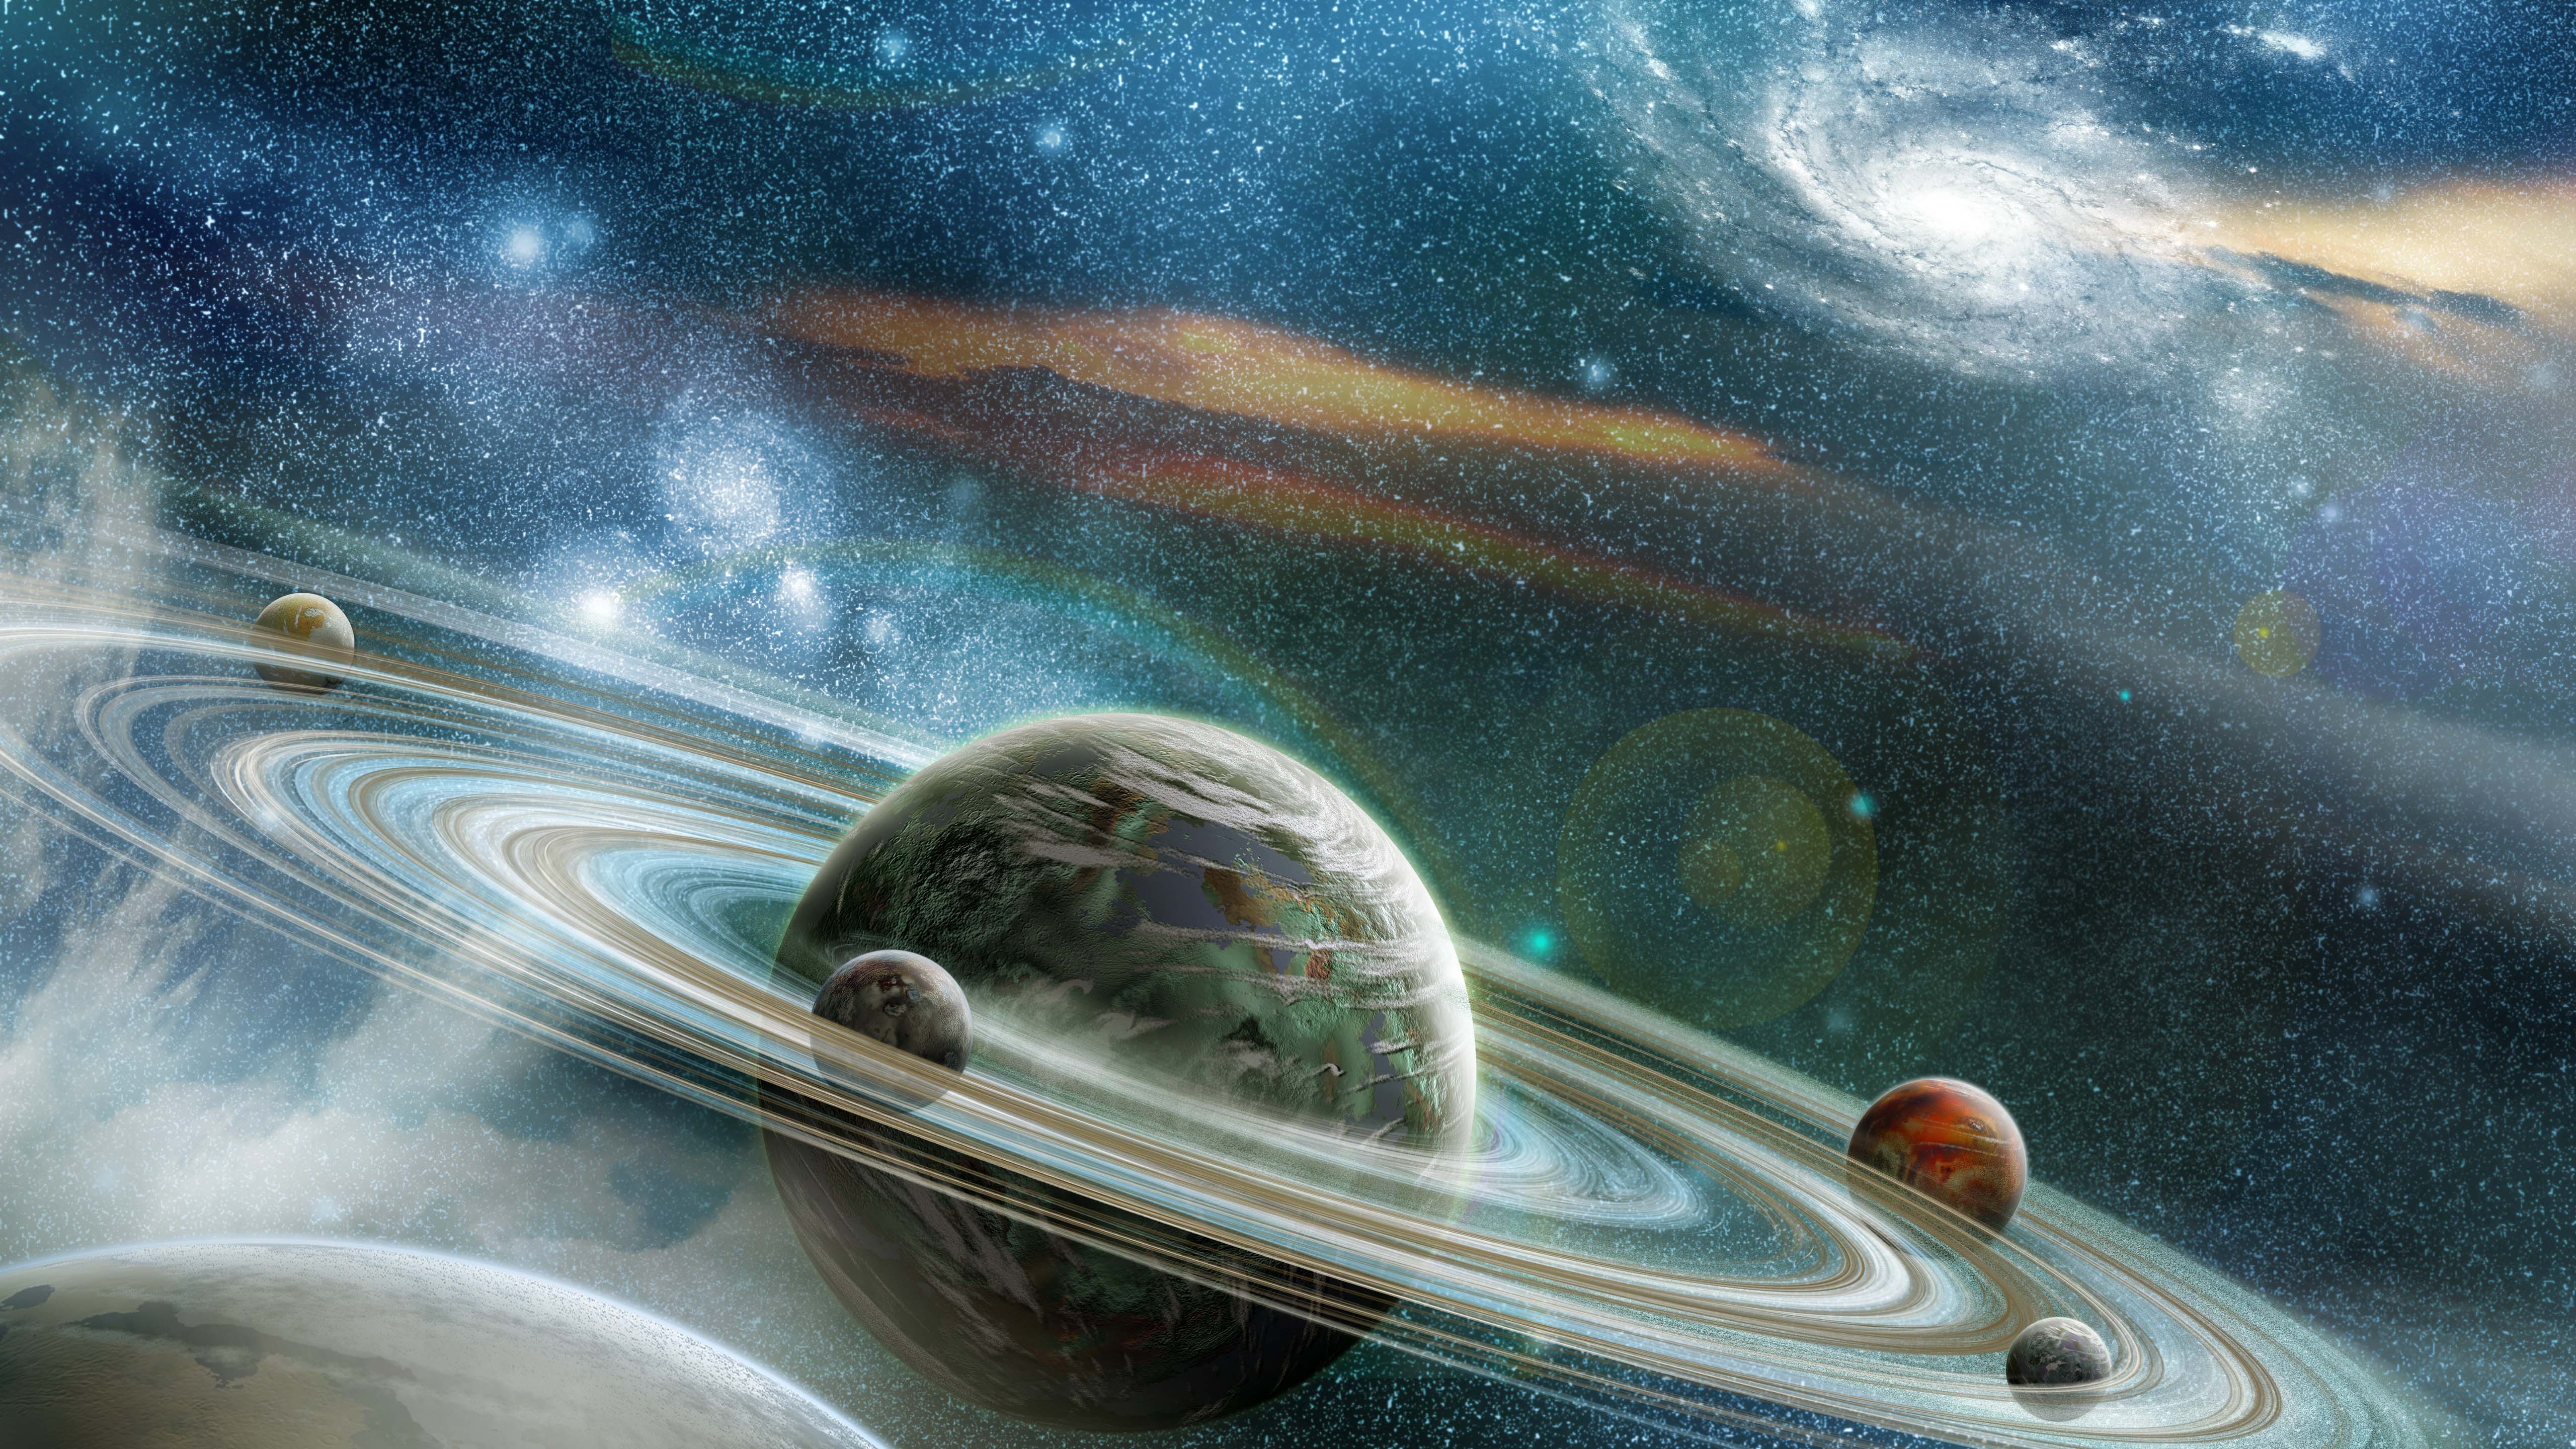 space wallpaper 4k,outer space,universe,planet,astronomical object,space